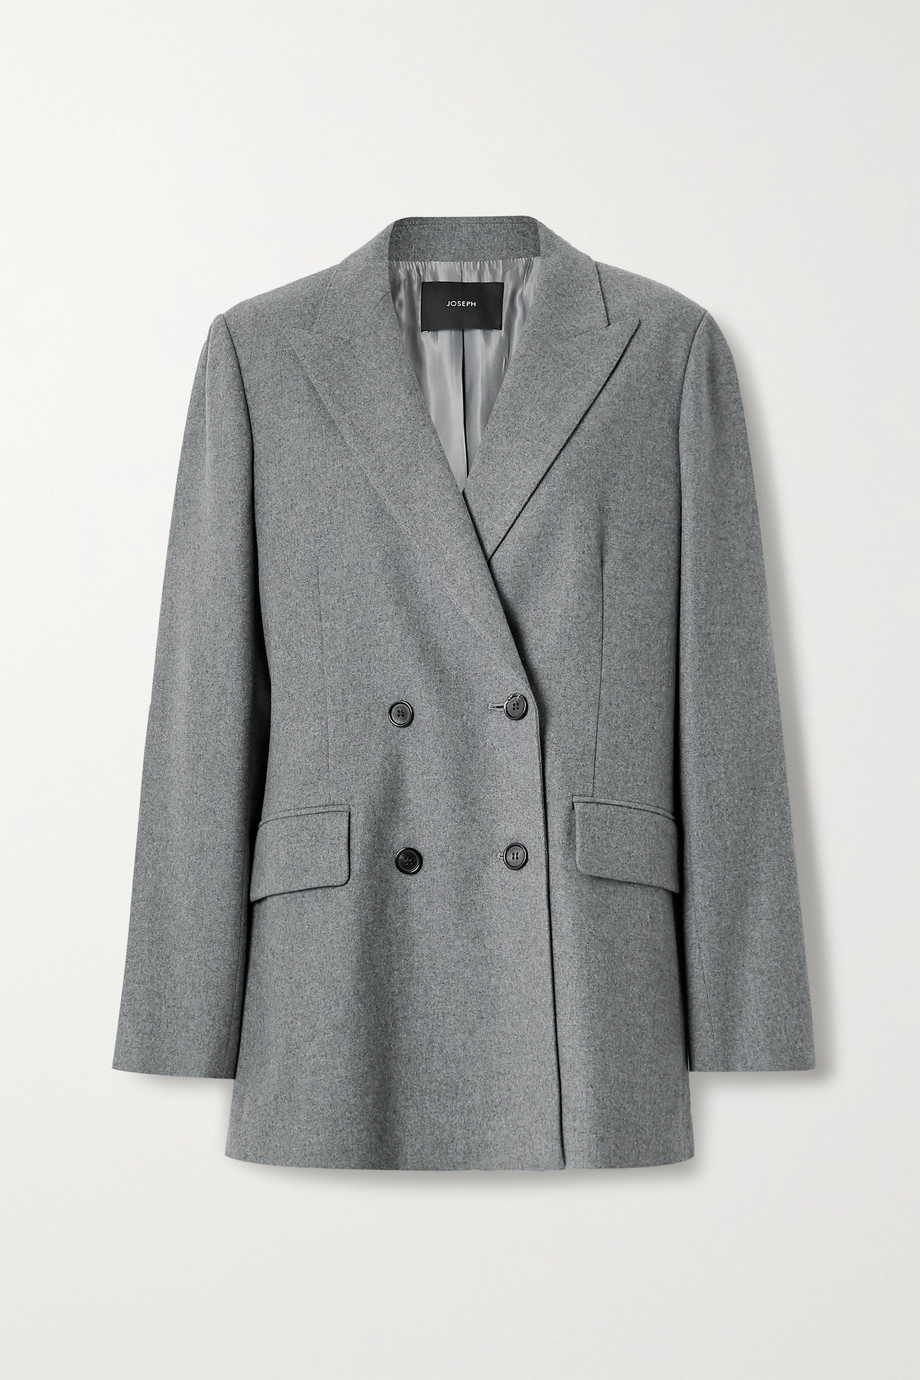 Joseph Jorgan oversized double-breasted wool and silk-blend flannel blazer